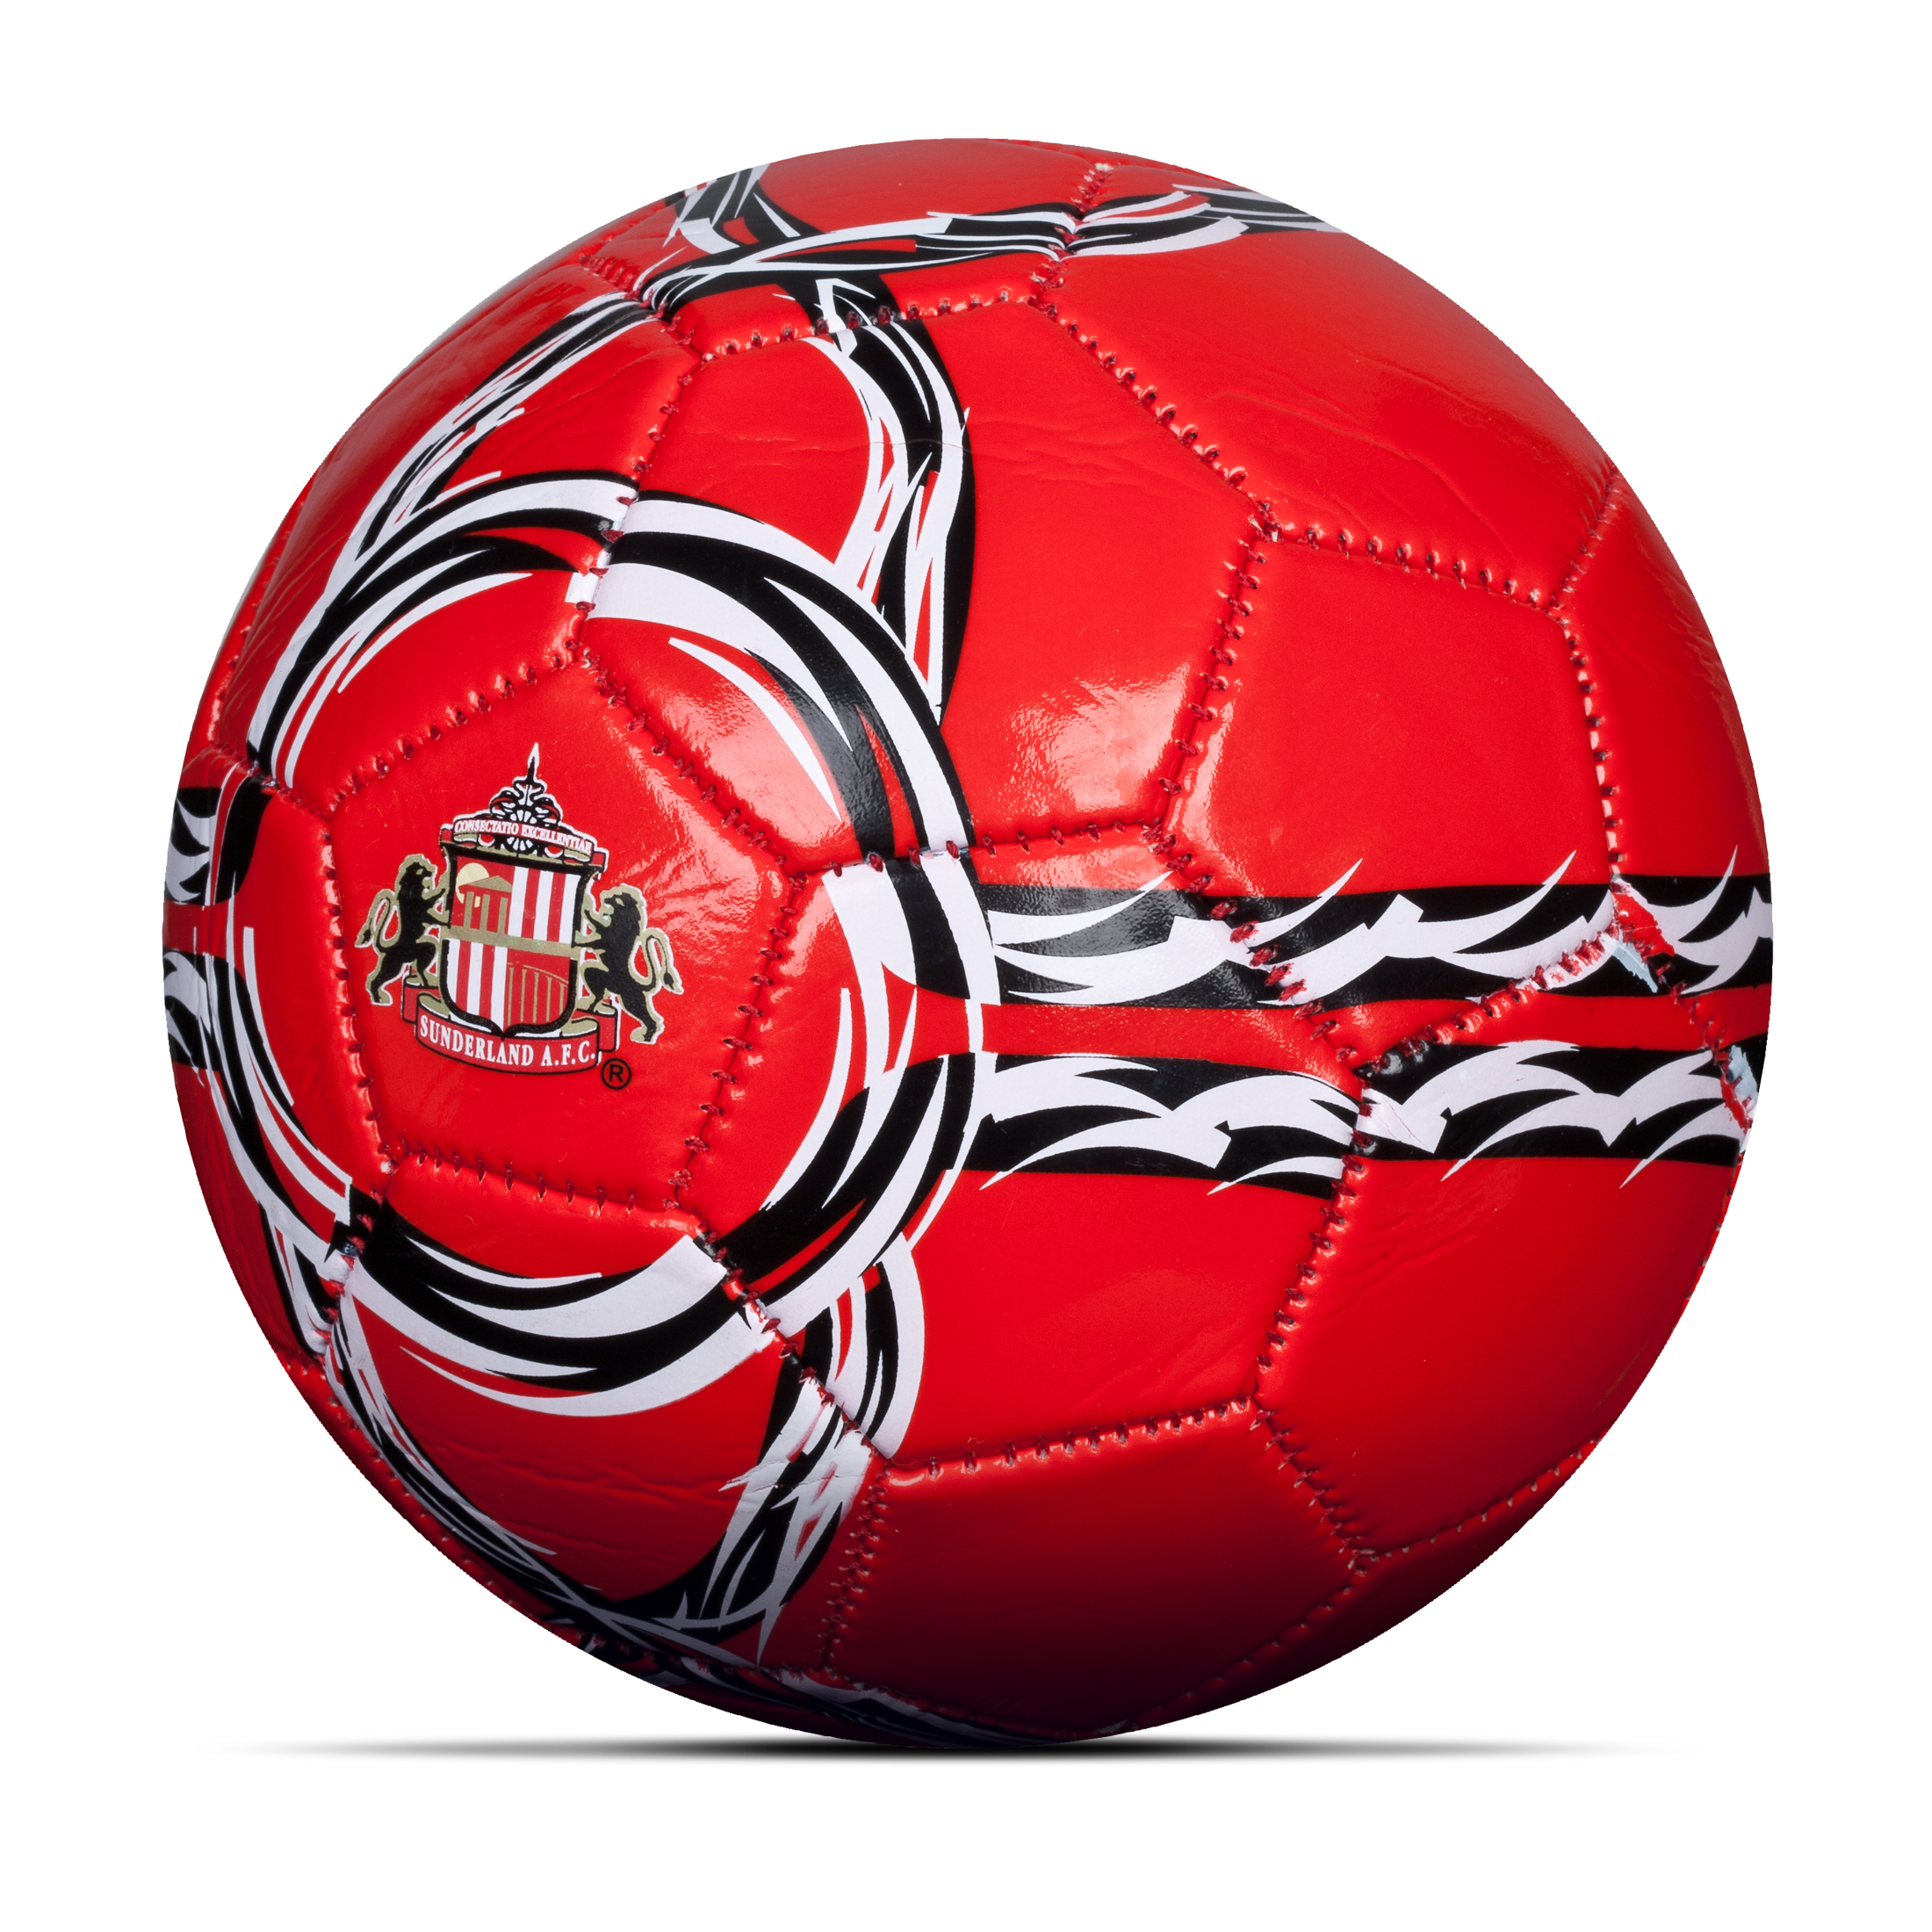 Sunderland Core Football - Size 2 - Red/White